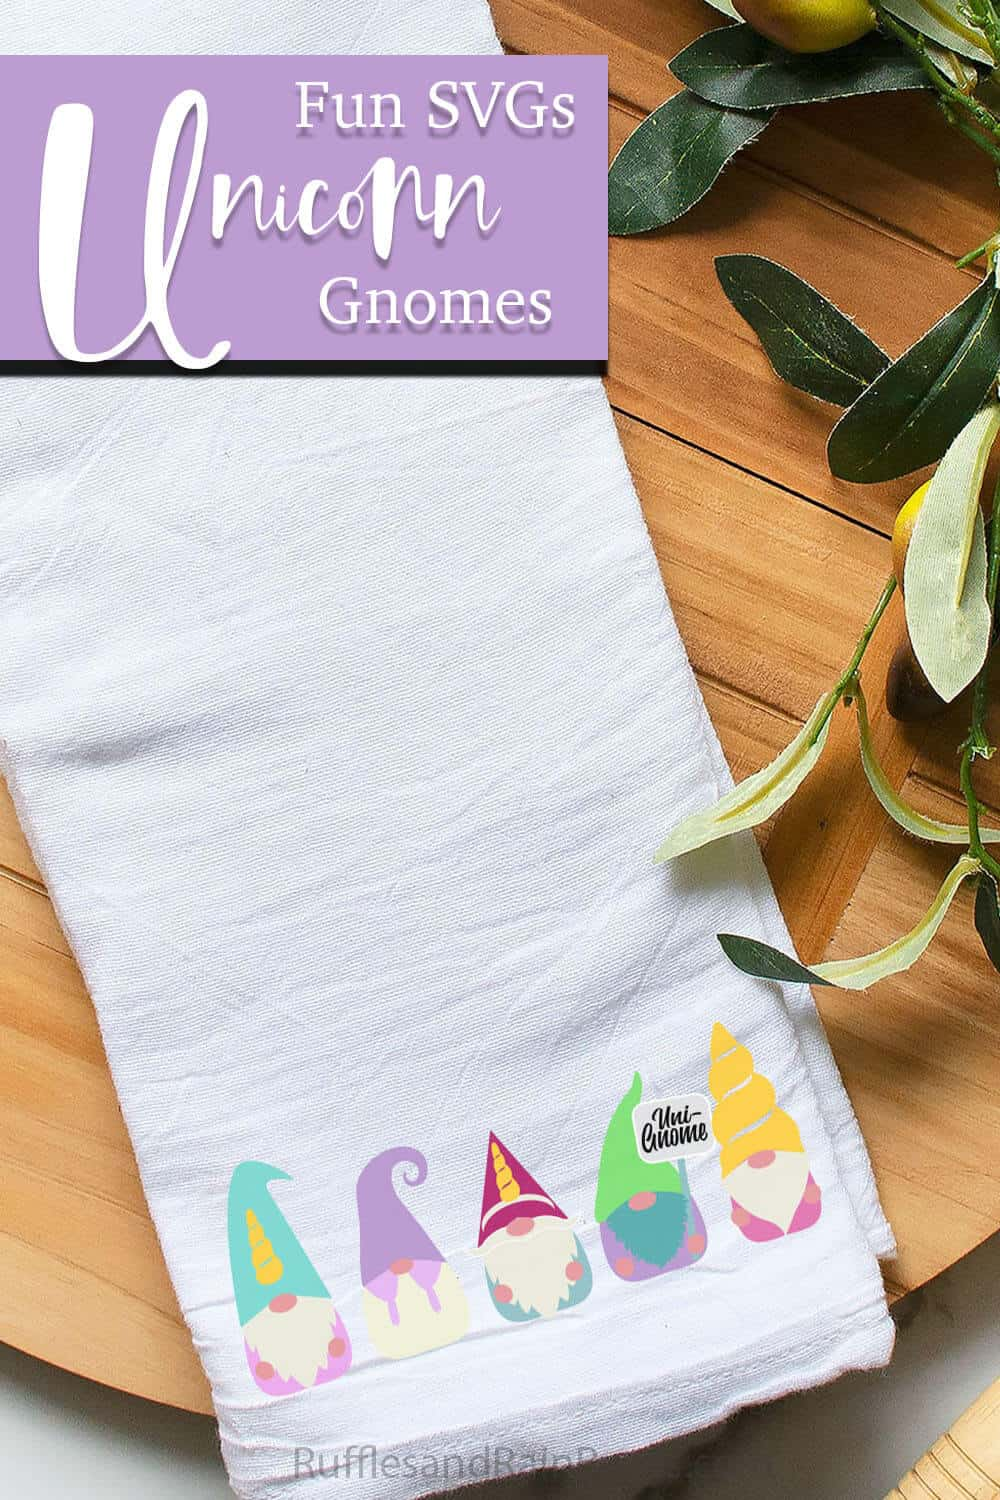 unicorn gnome sublimation design on a kitchen towel with text which reads fun SVGs unicorn gnomes